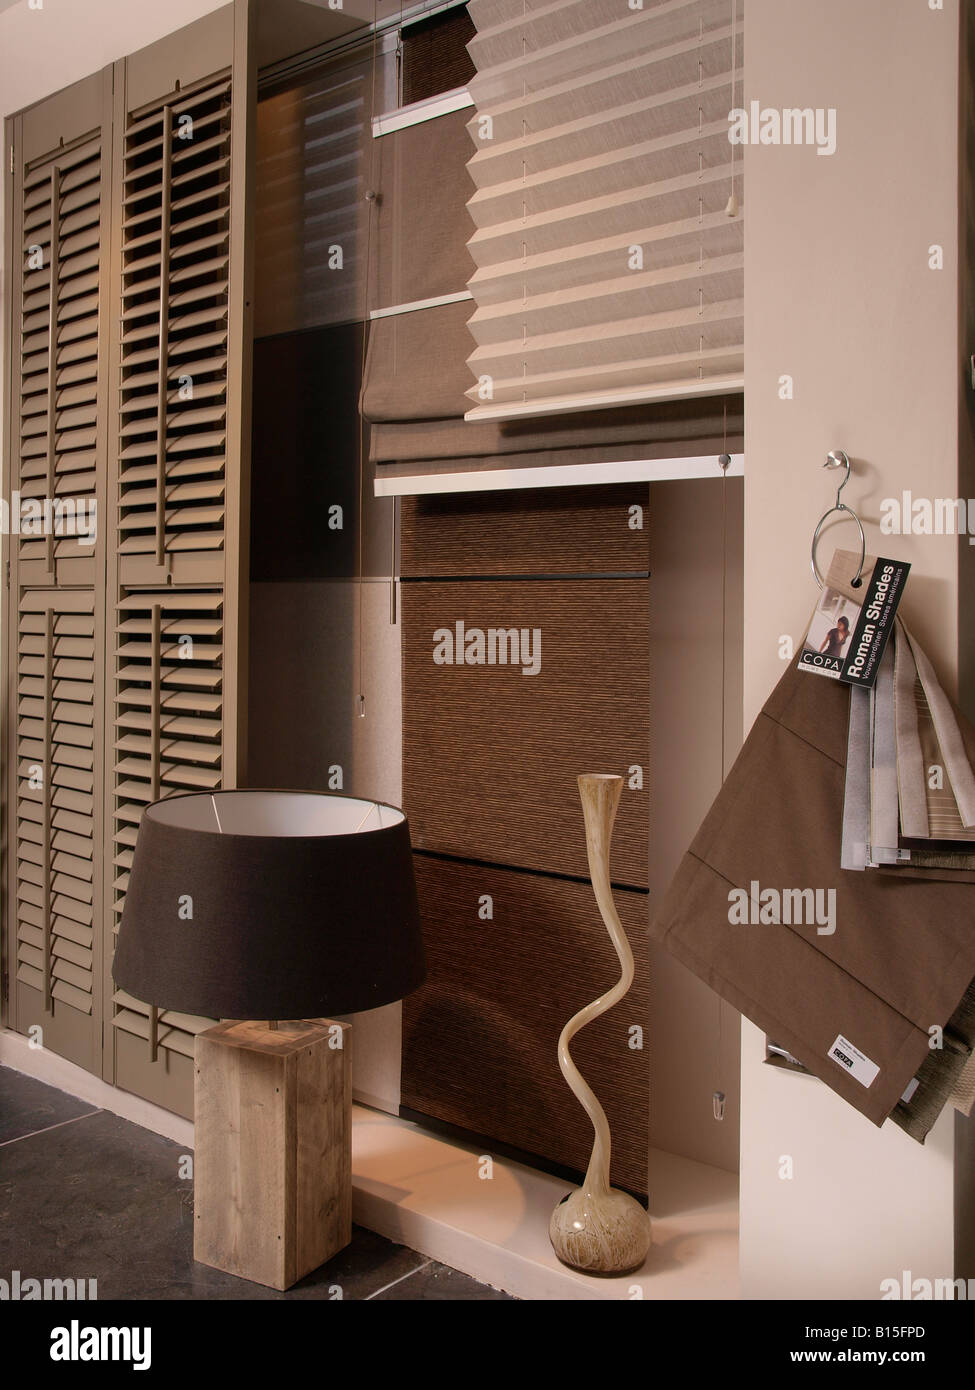 Combining trendy modern interior items in brown grey earth colours shutters lamps vase curtains - Stock Image